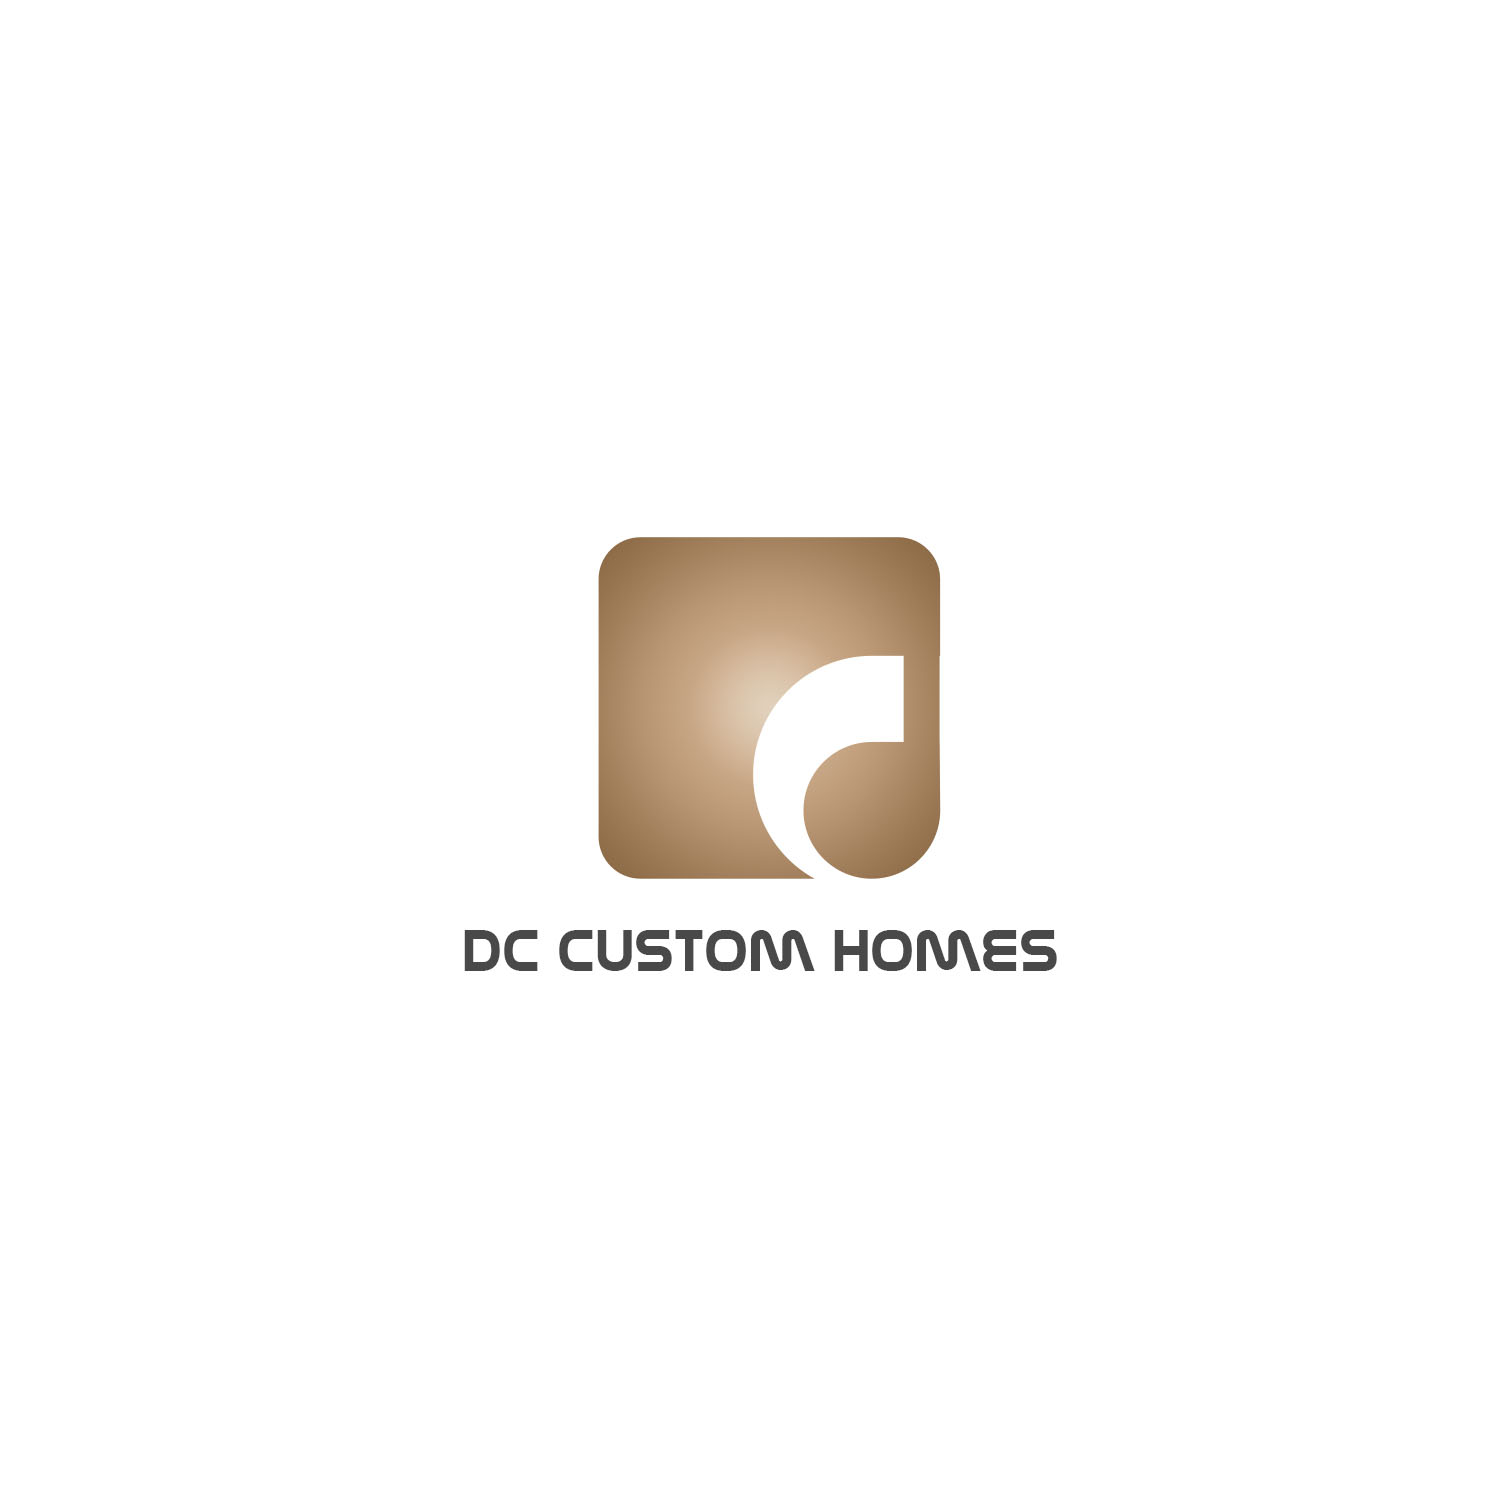 Logo Design by Private User - Entry No. 151 in the Logo Design Contest Creative Logo Design for DC Custom Homes.